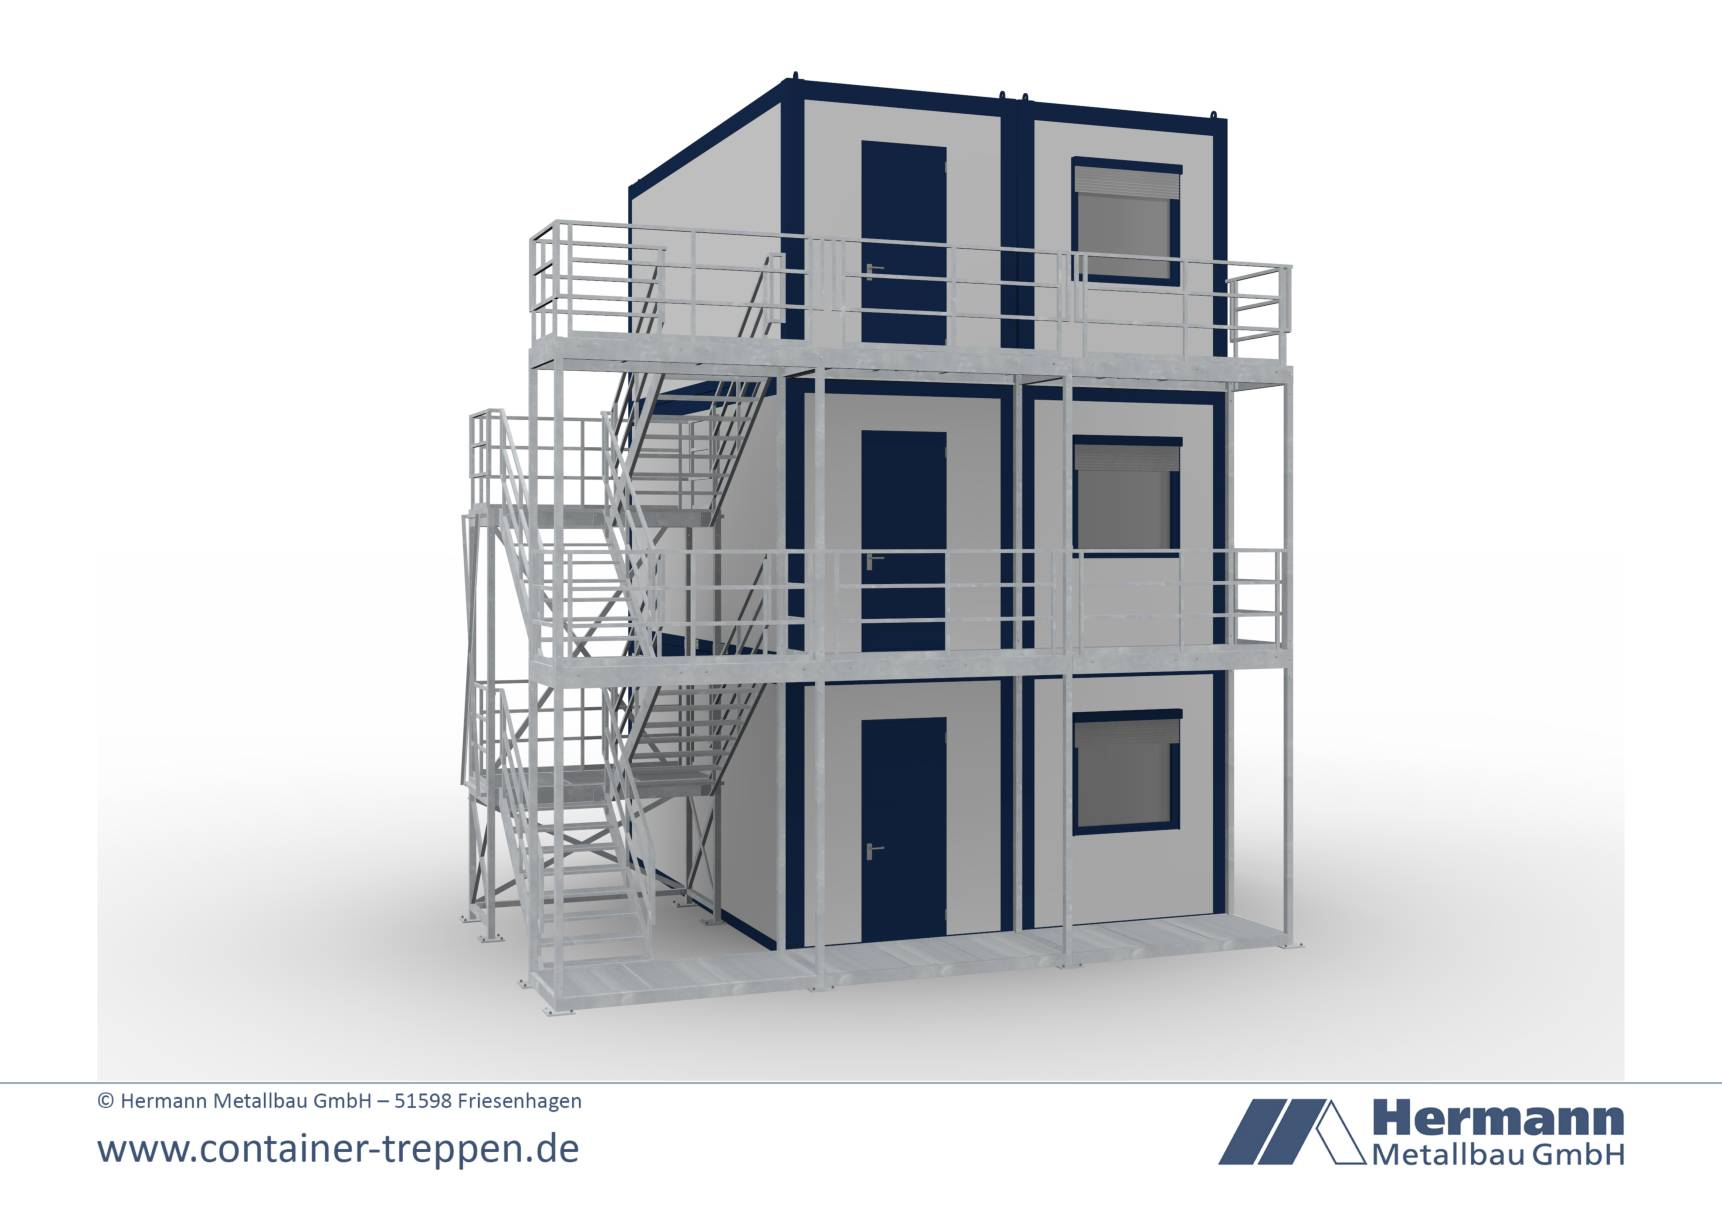 Containertreppe 3G  12